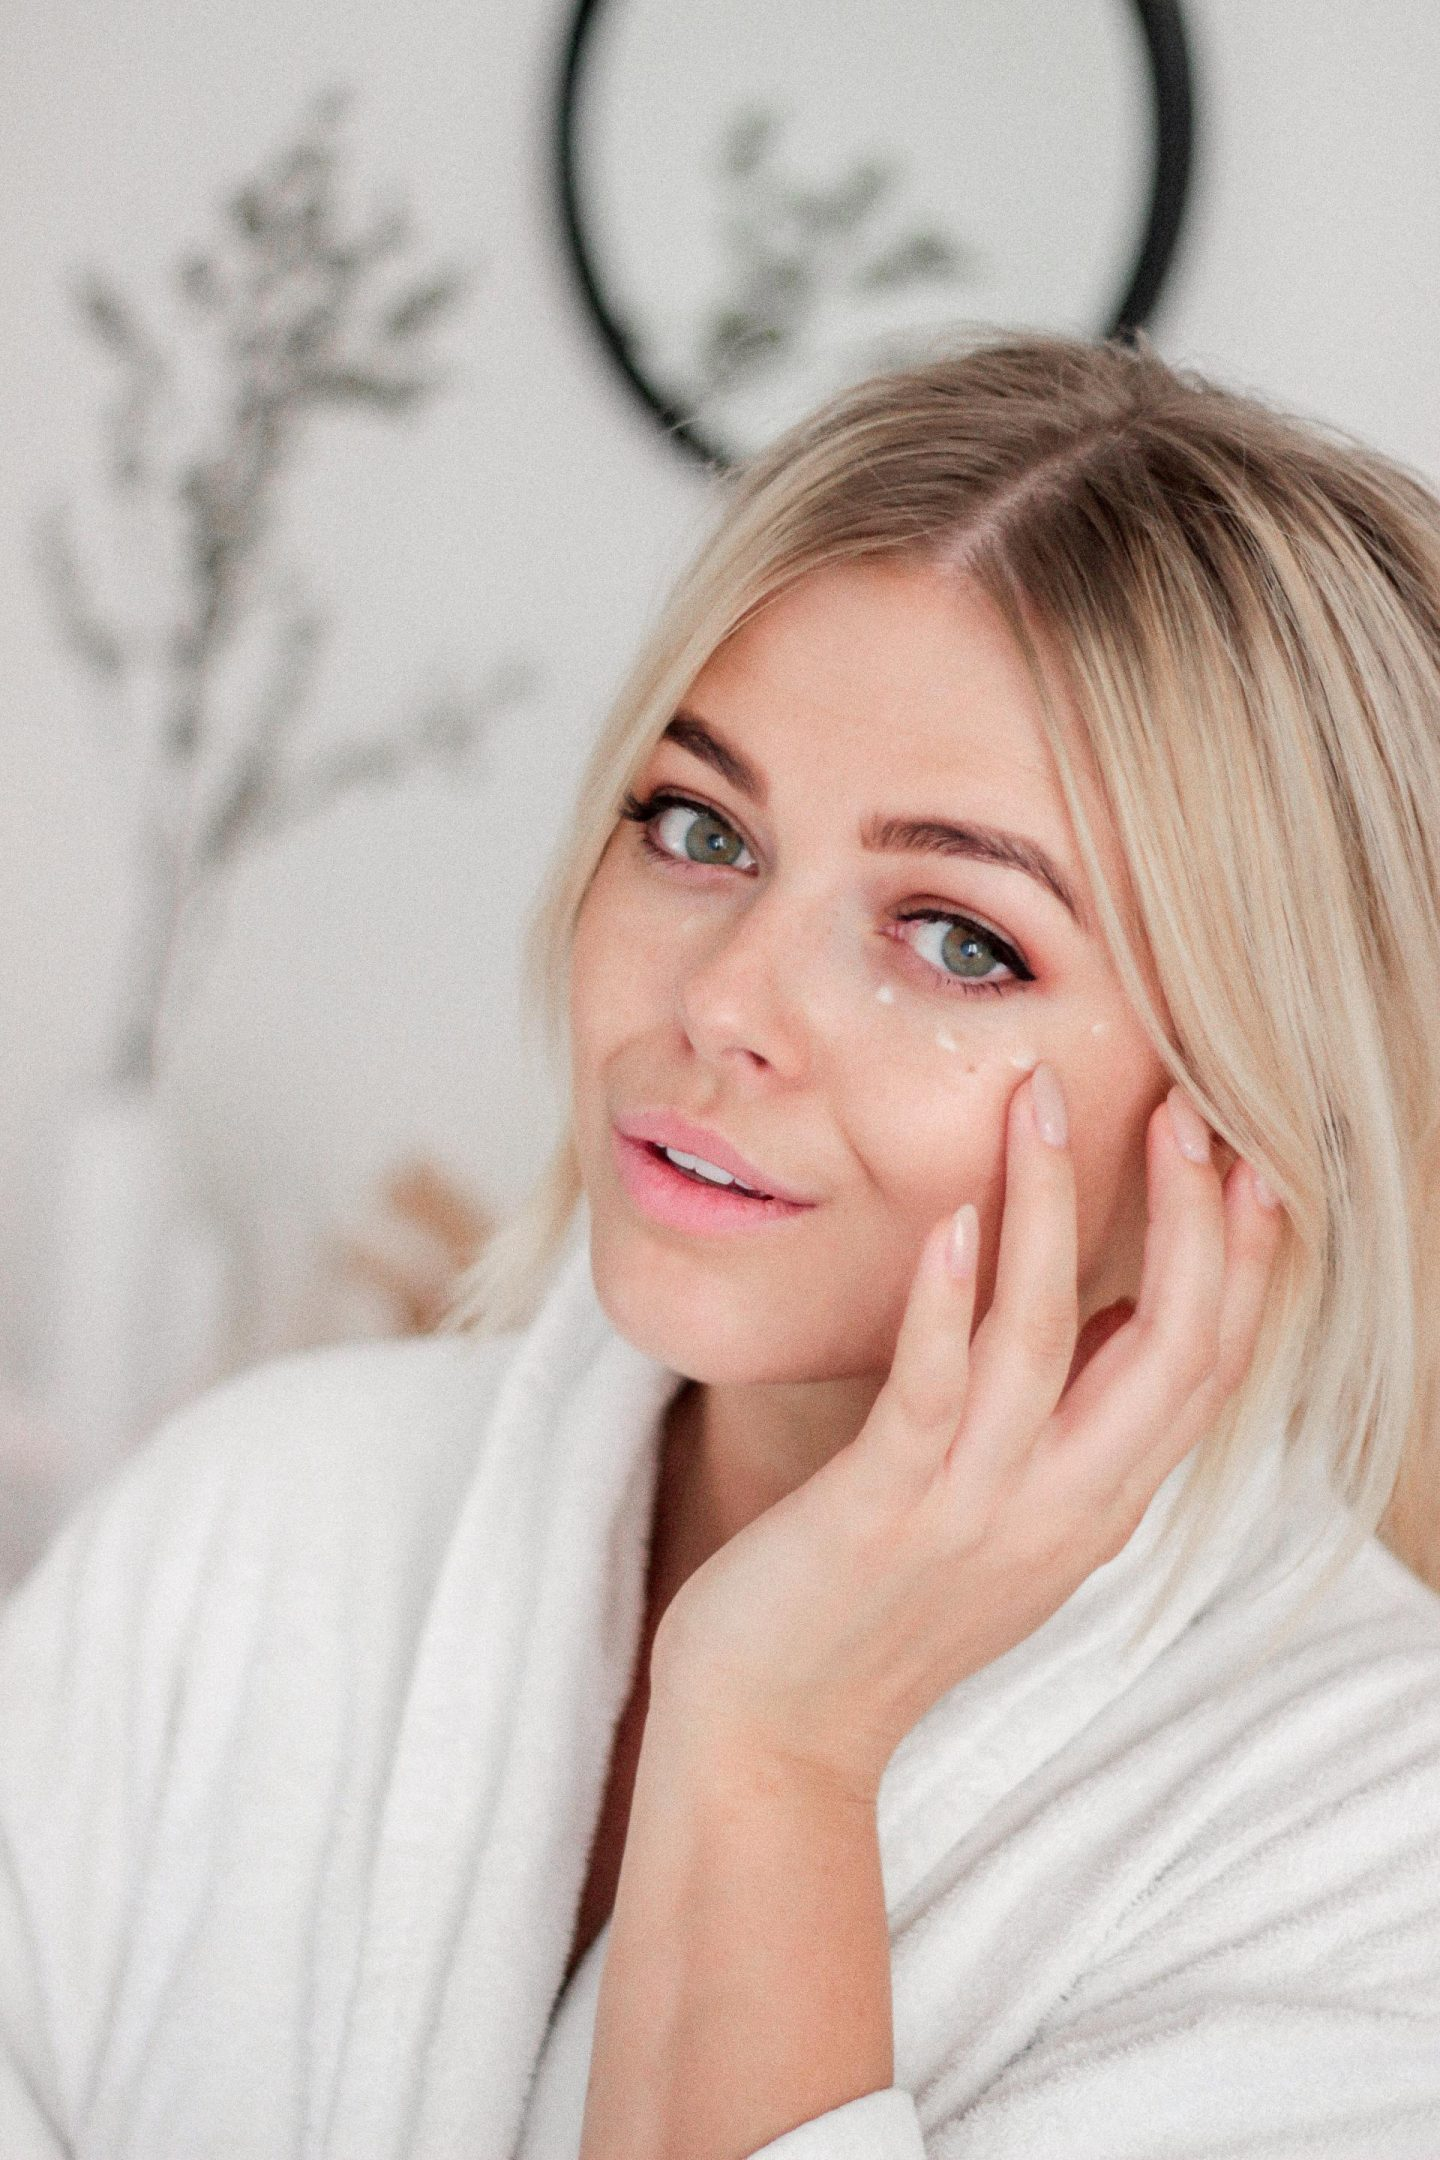 TIPS TO ADD TO YOUR BEAUTY ROUTINE WHEN YOU ARE OVER 25